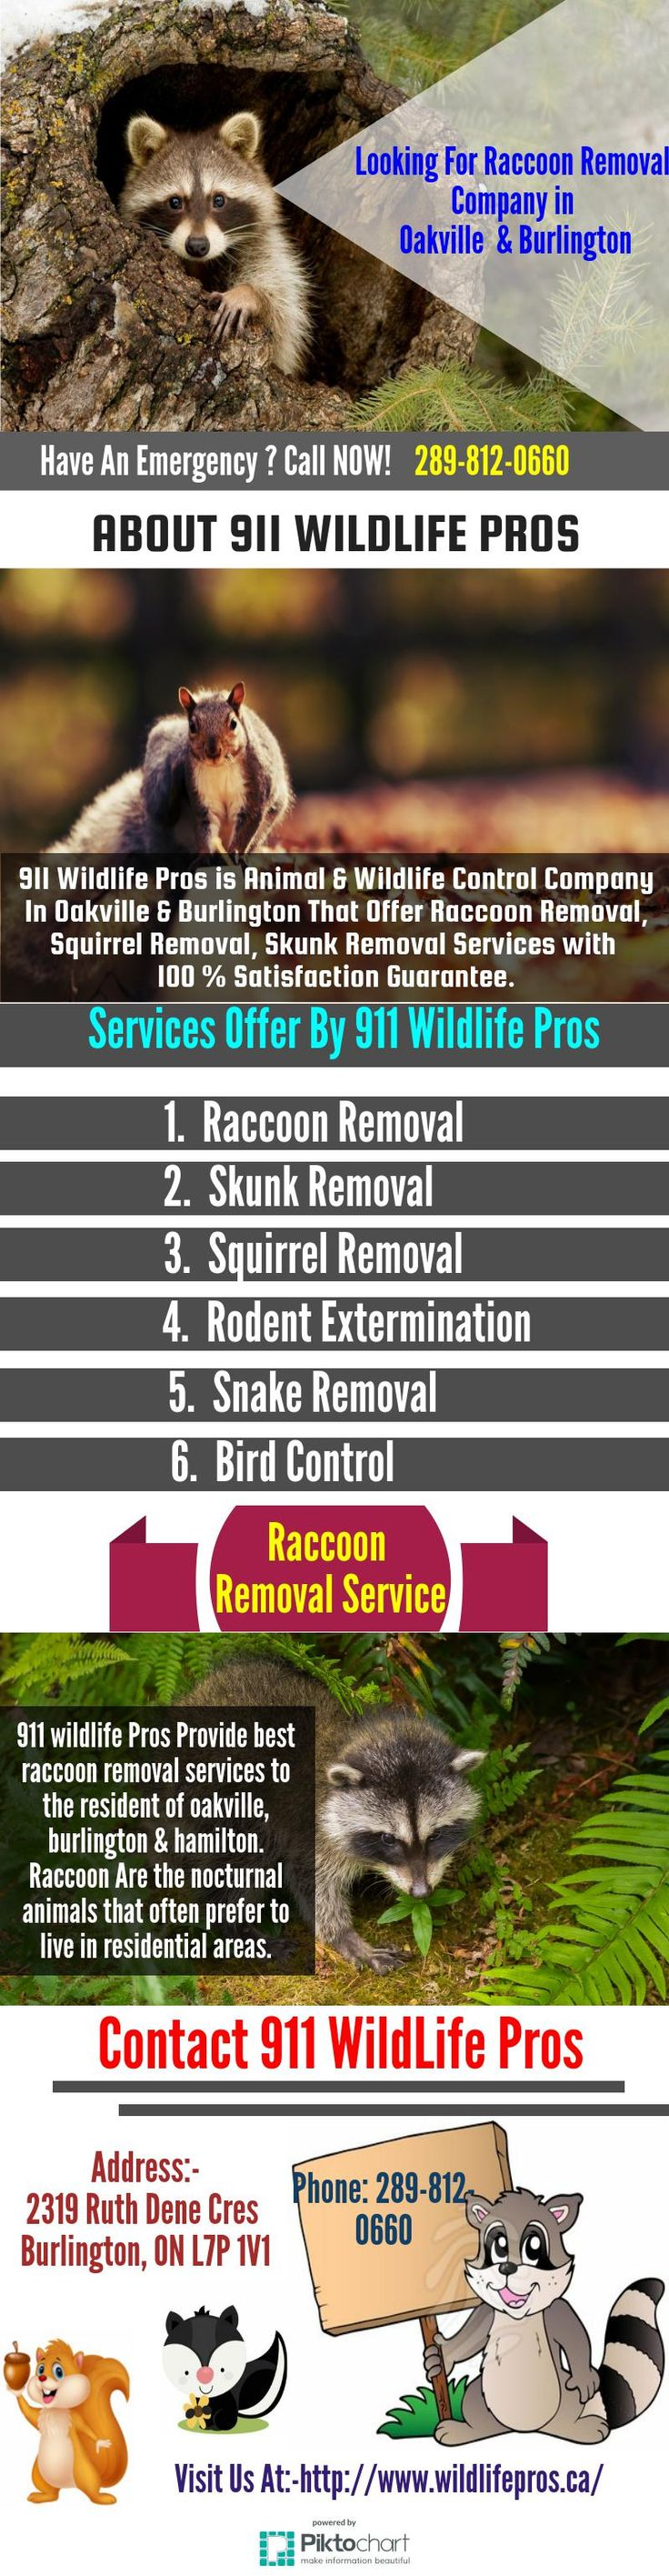 911 Wildlife Pros is Burlington animal control Comapny taht provide solution for Raccoon Removal, Squirrel Removal, Skunk Removal in Burlington, Oakville & Hamilton. We offer animal control & wildlife removal services to both residential and commercial clients. Feel free to contact (289-812-0660) to know more about our services.